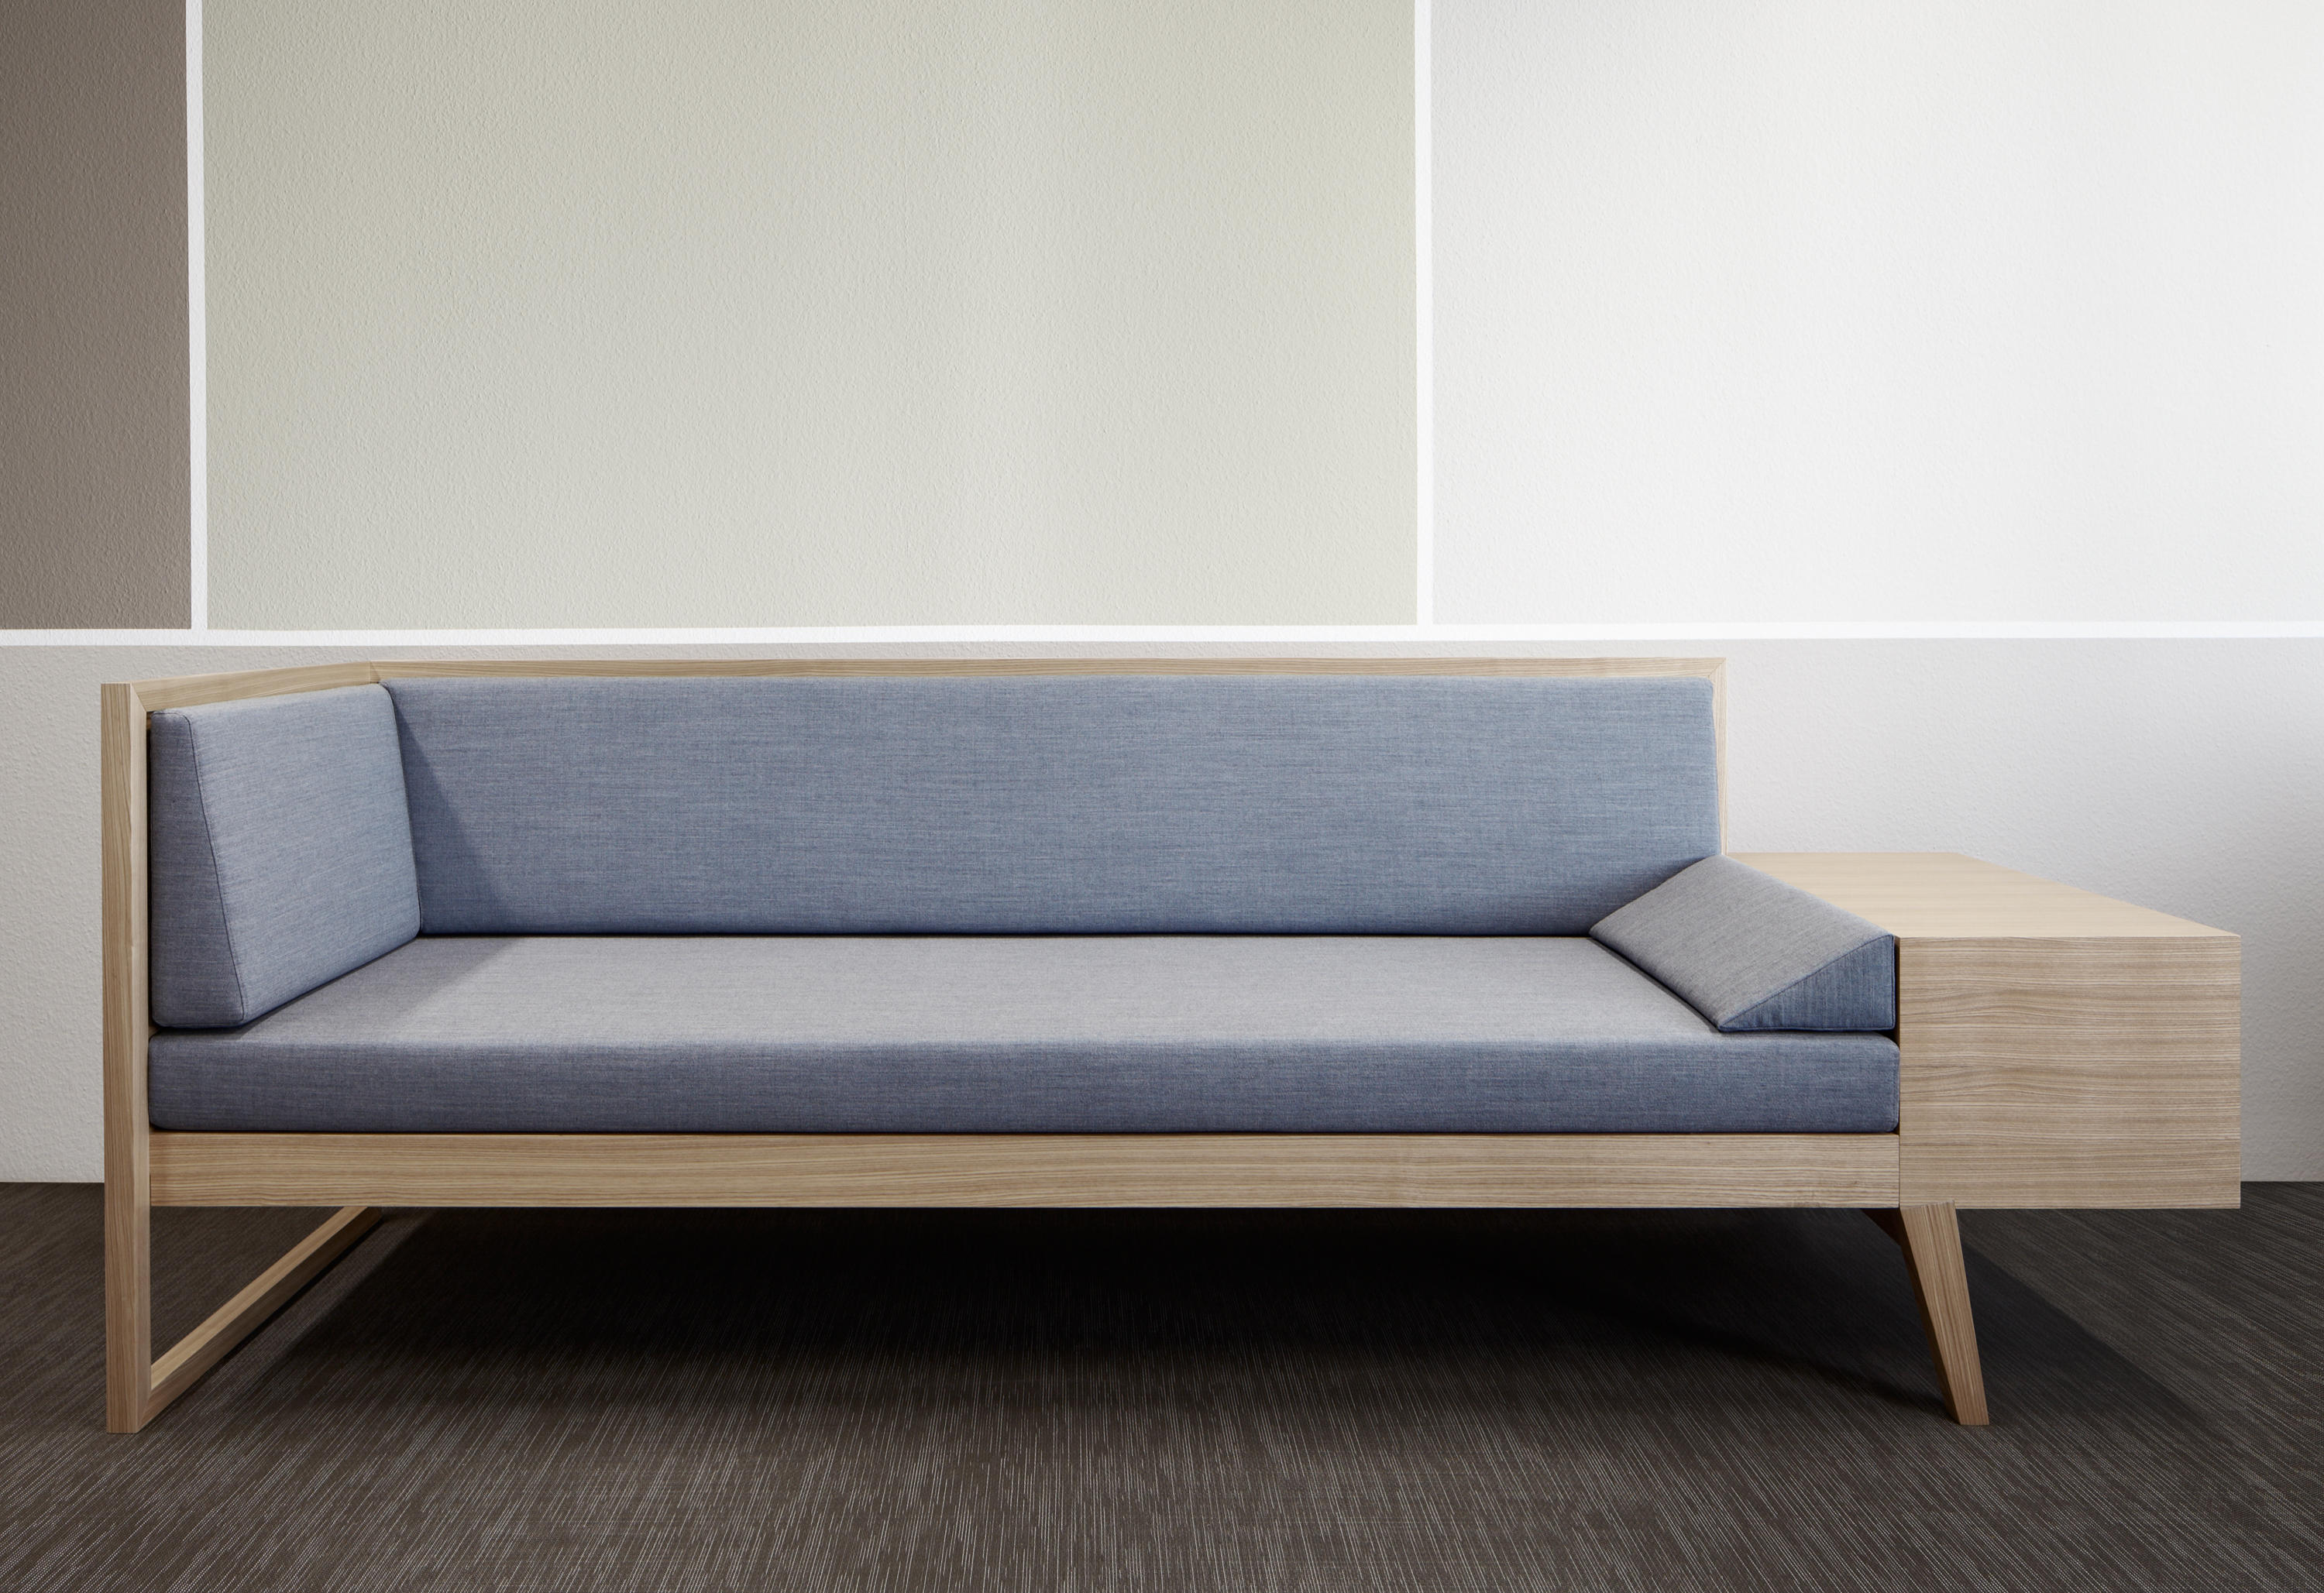 sofas couches drummond sofa review sophie beds from raum b architektur architonic